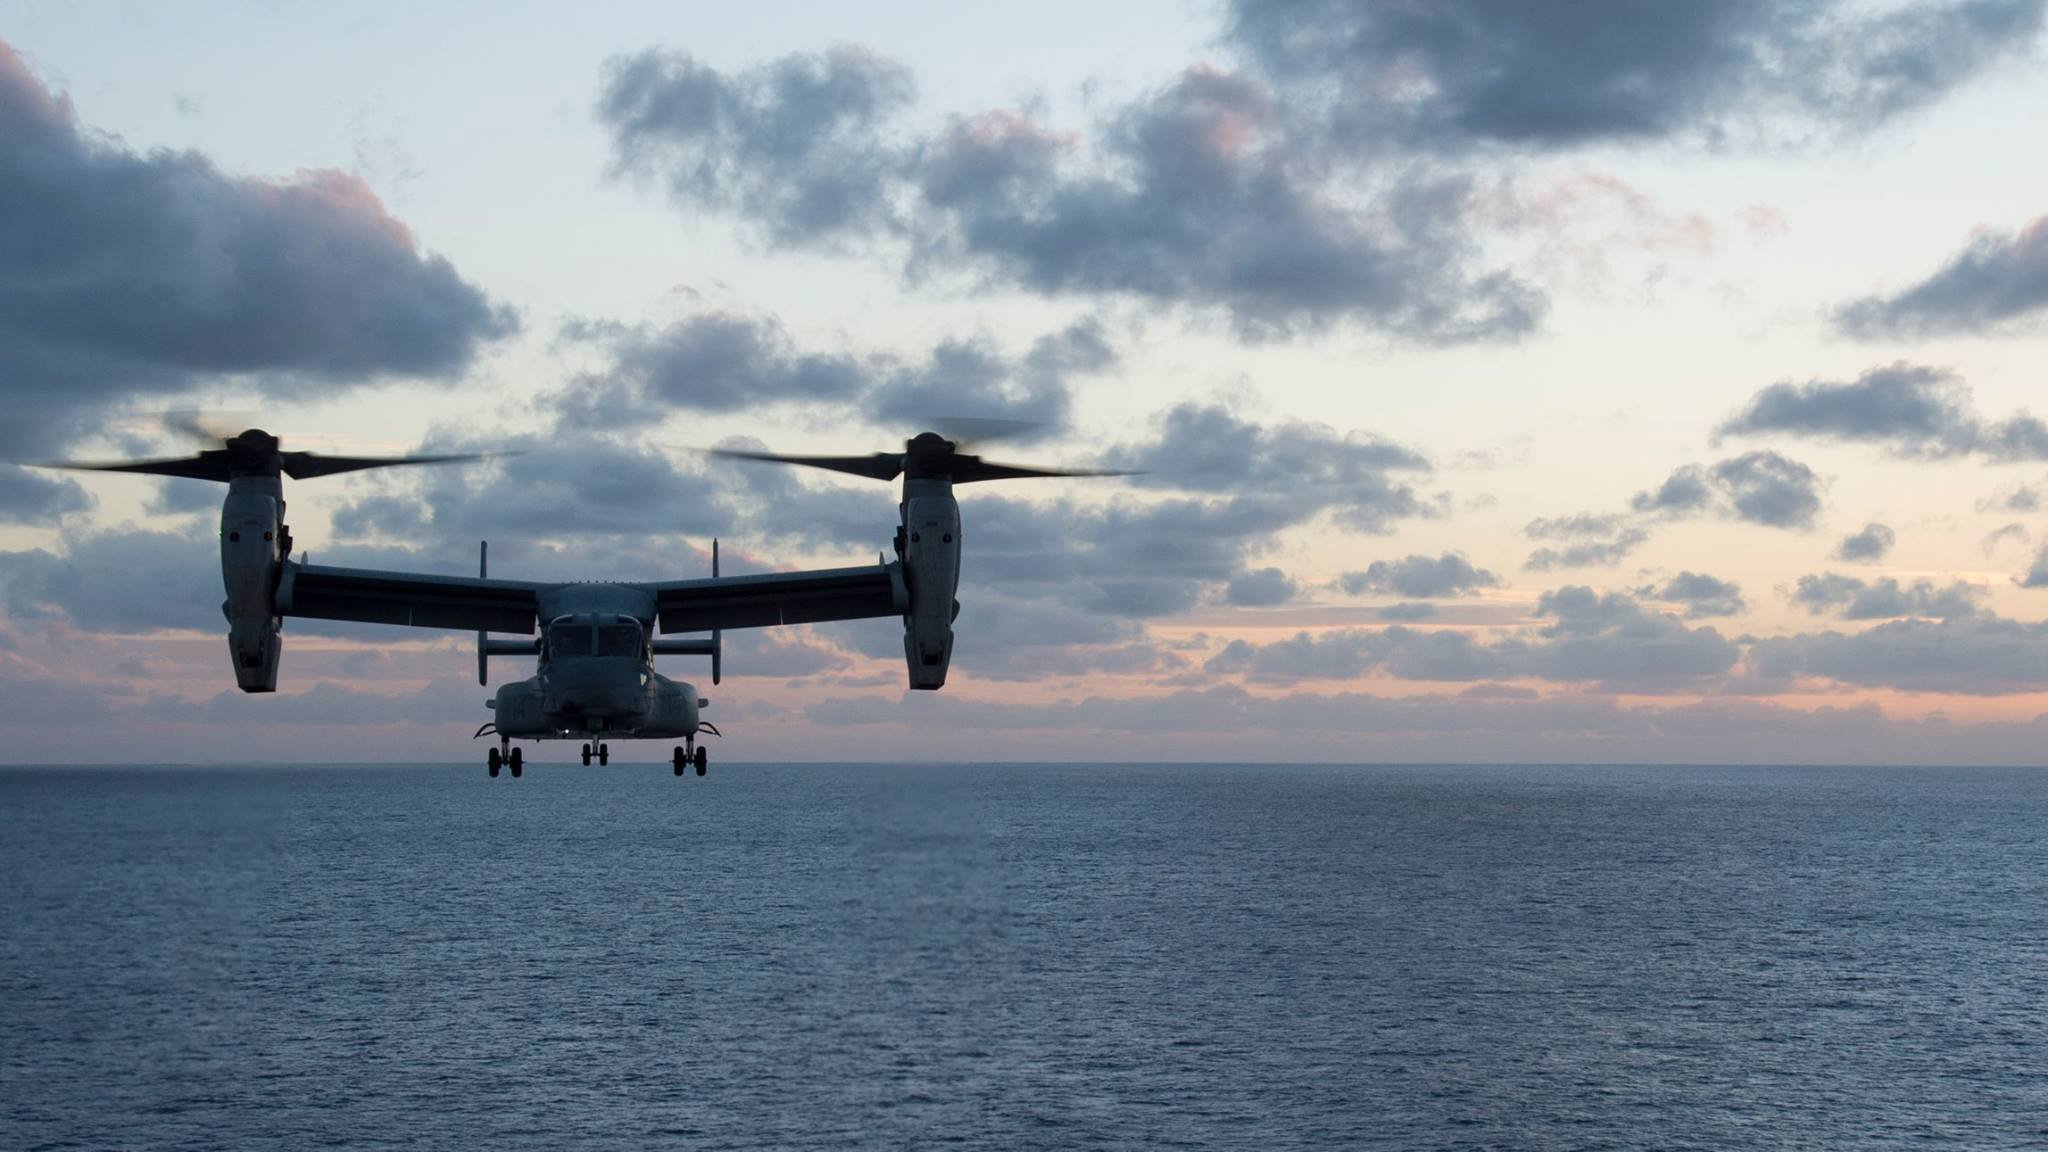 The Australian Navy has located a missing US military aircraft that crashed off Australia's east coast on August 6th, 2017. (Credit: USS Bonhomme Richard)